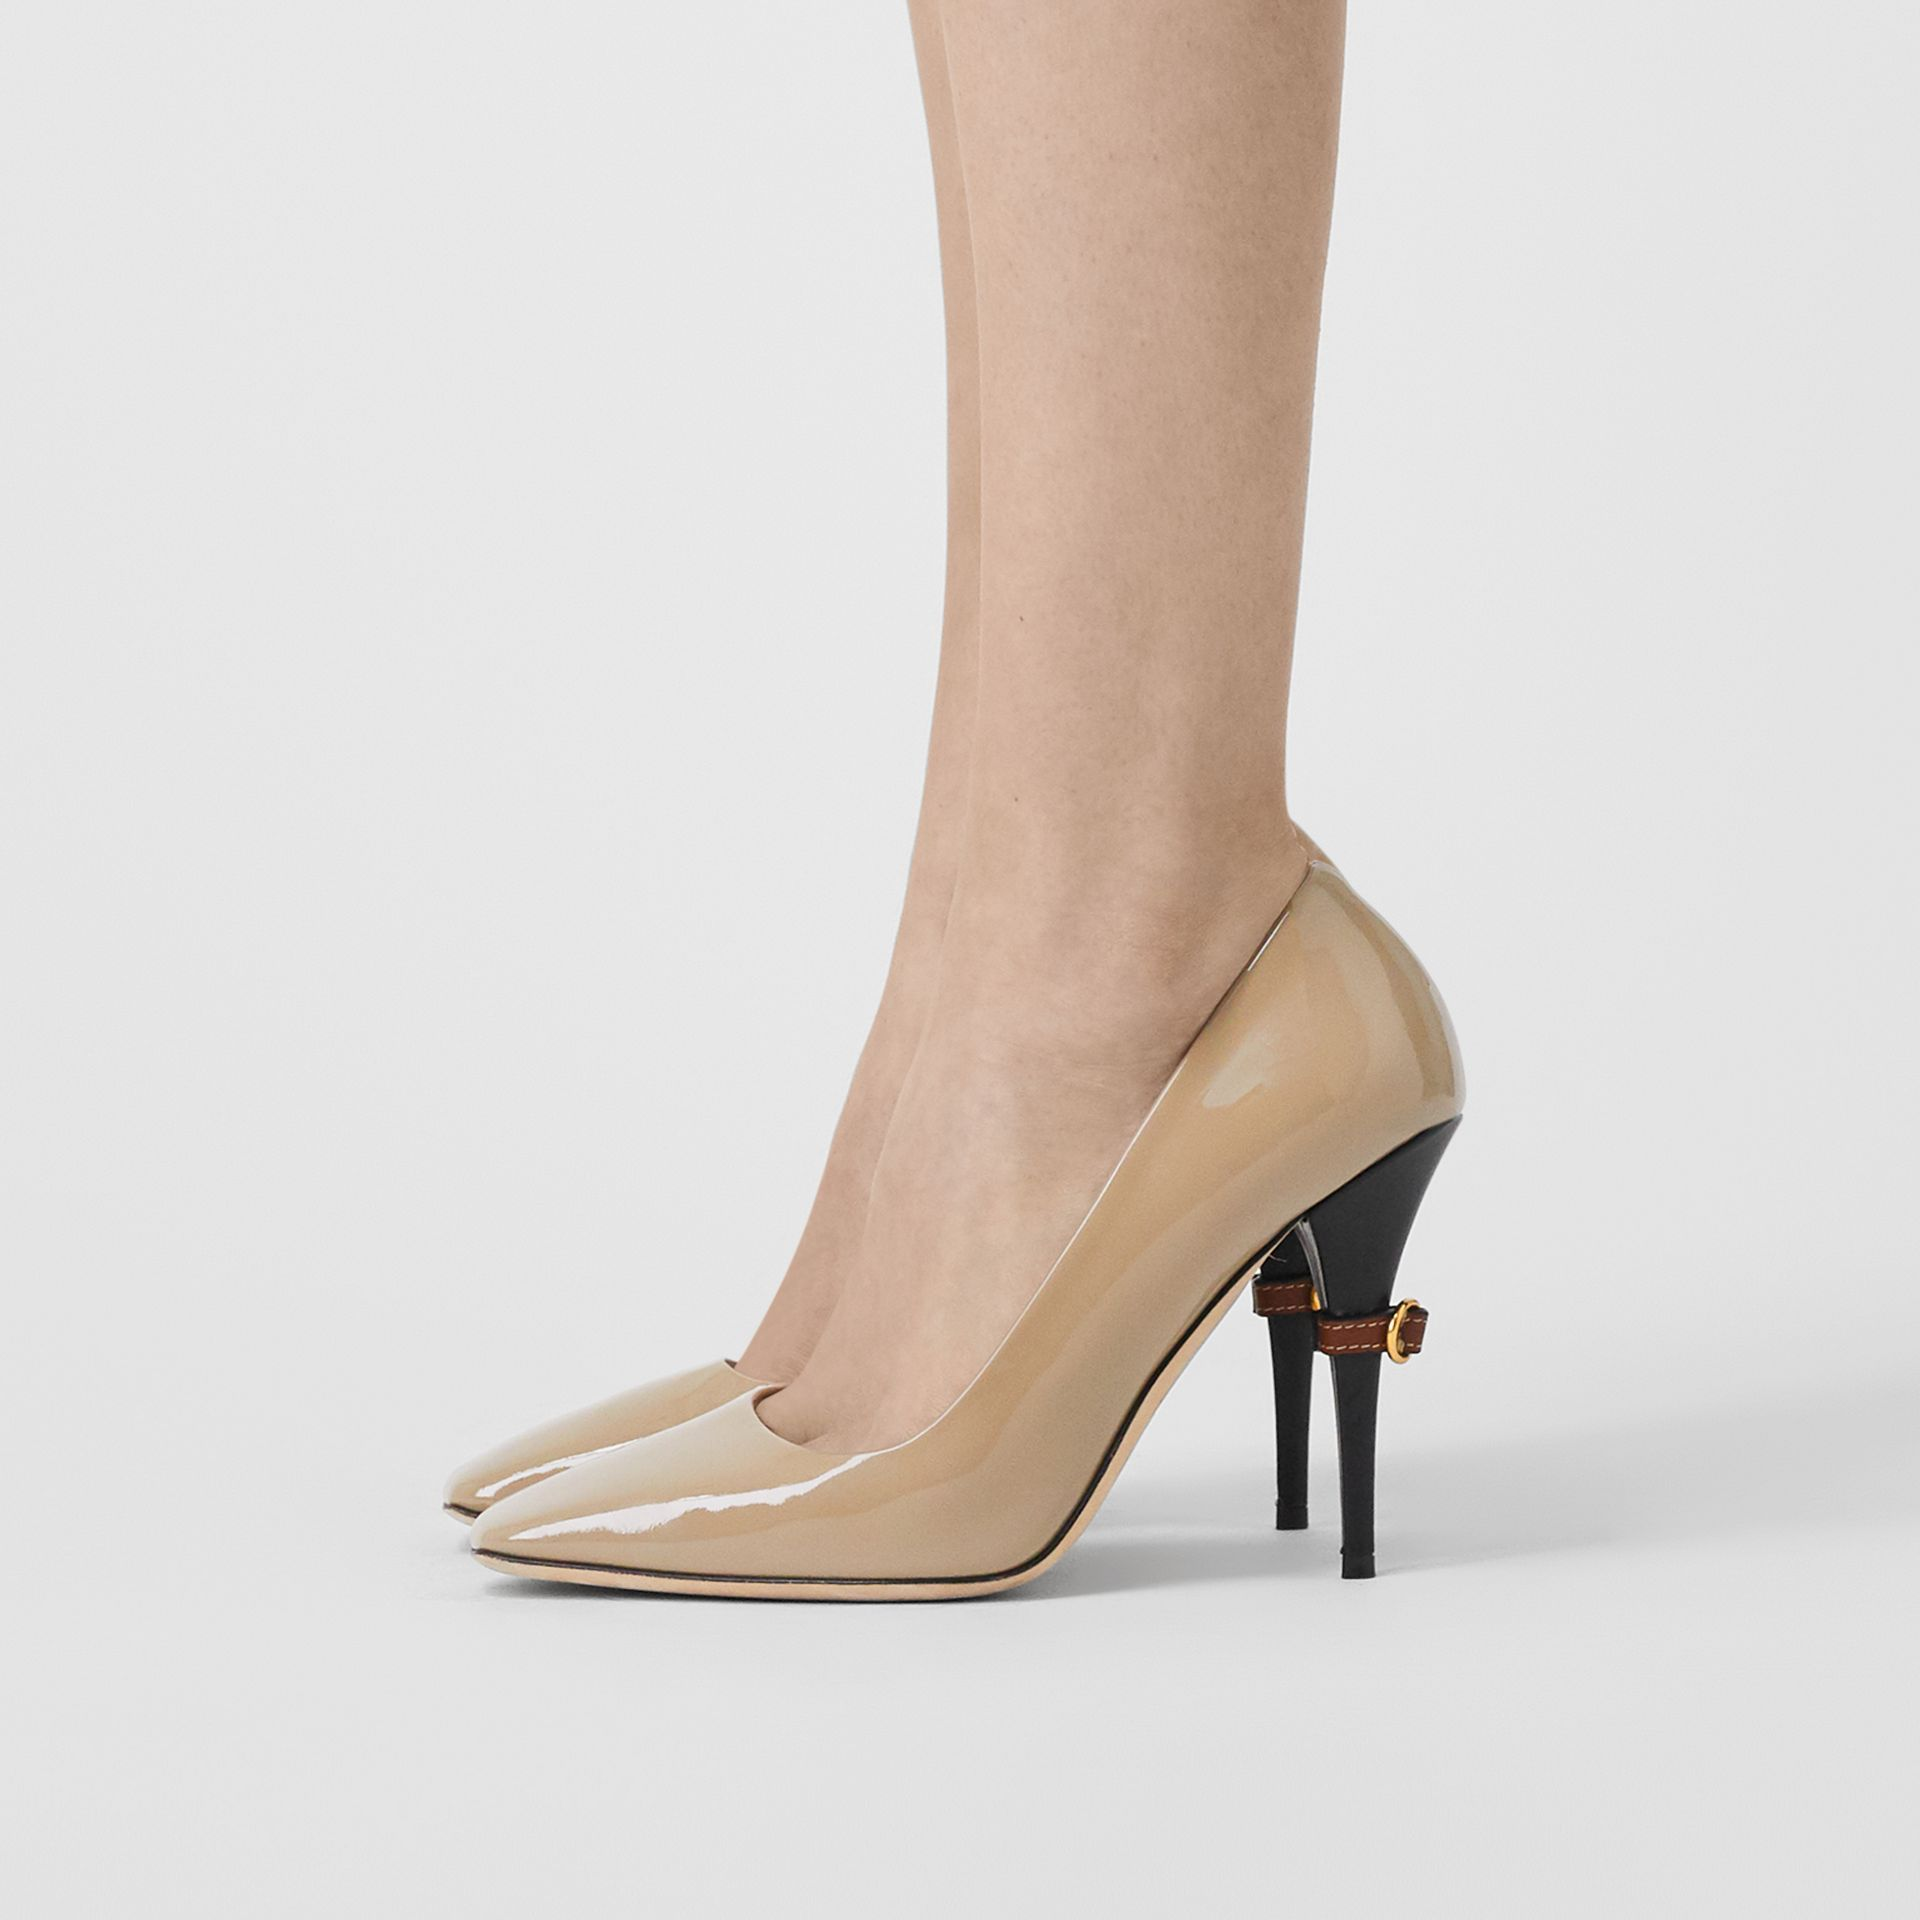 D-ring Detail Patent Leather Square-toe Pumps in Dark Honey - Women | Burberry - gallery image 2